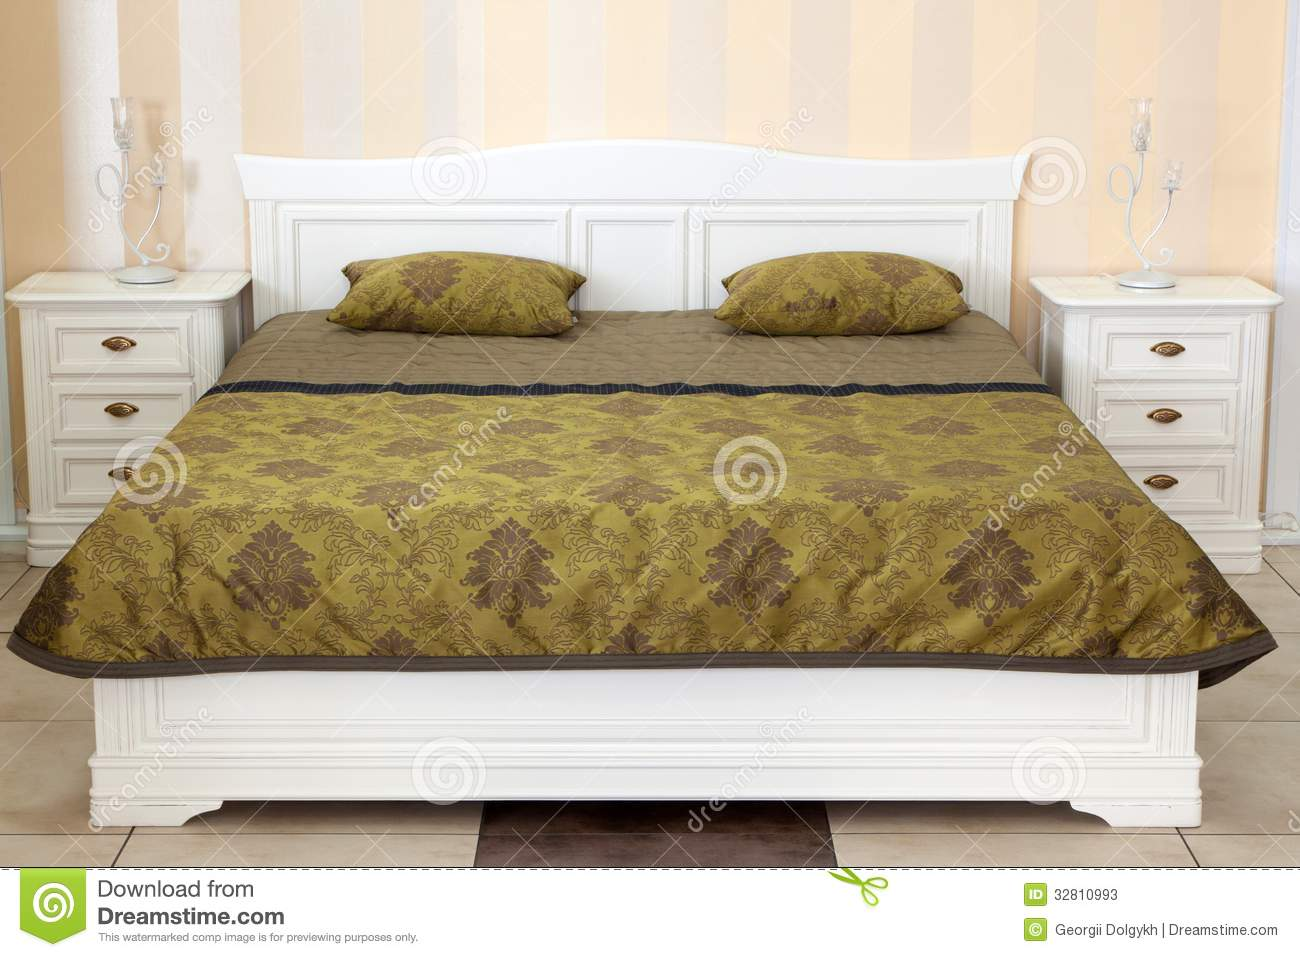 Modern Italian Style Bedroom Stock Photos - Image: 32810993